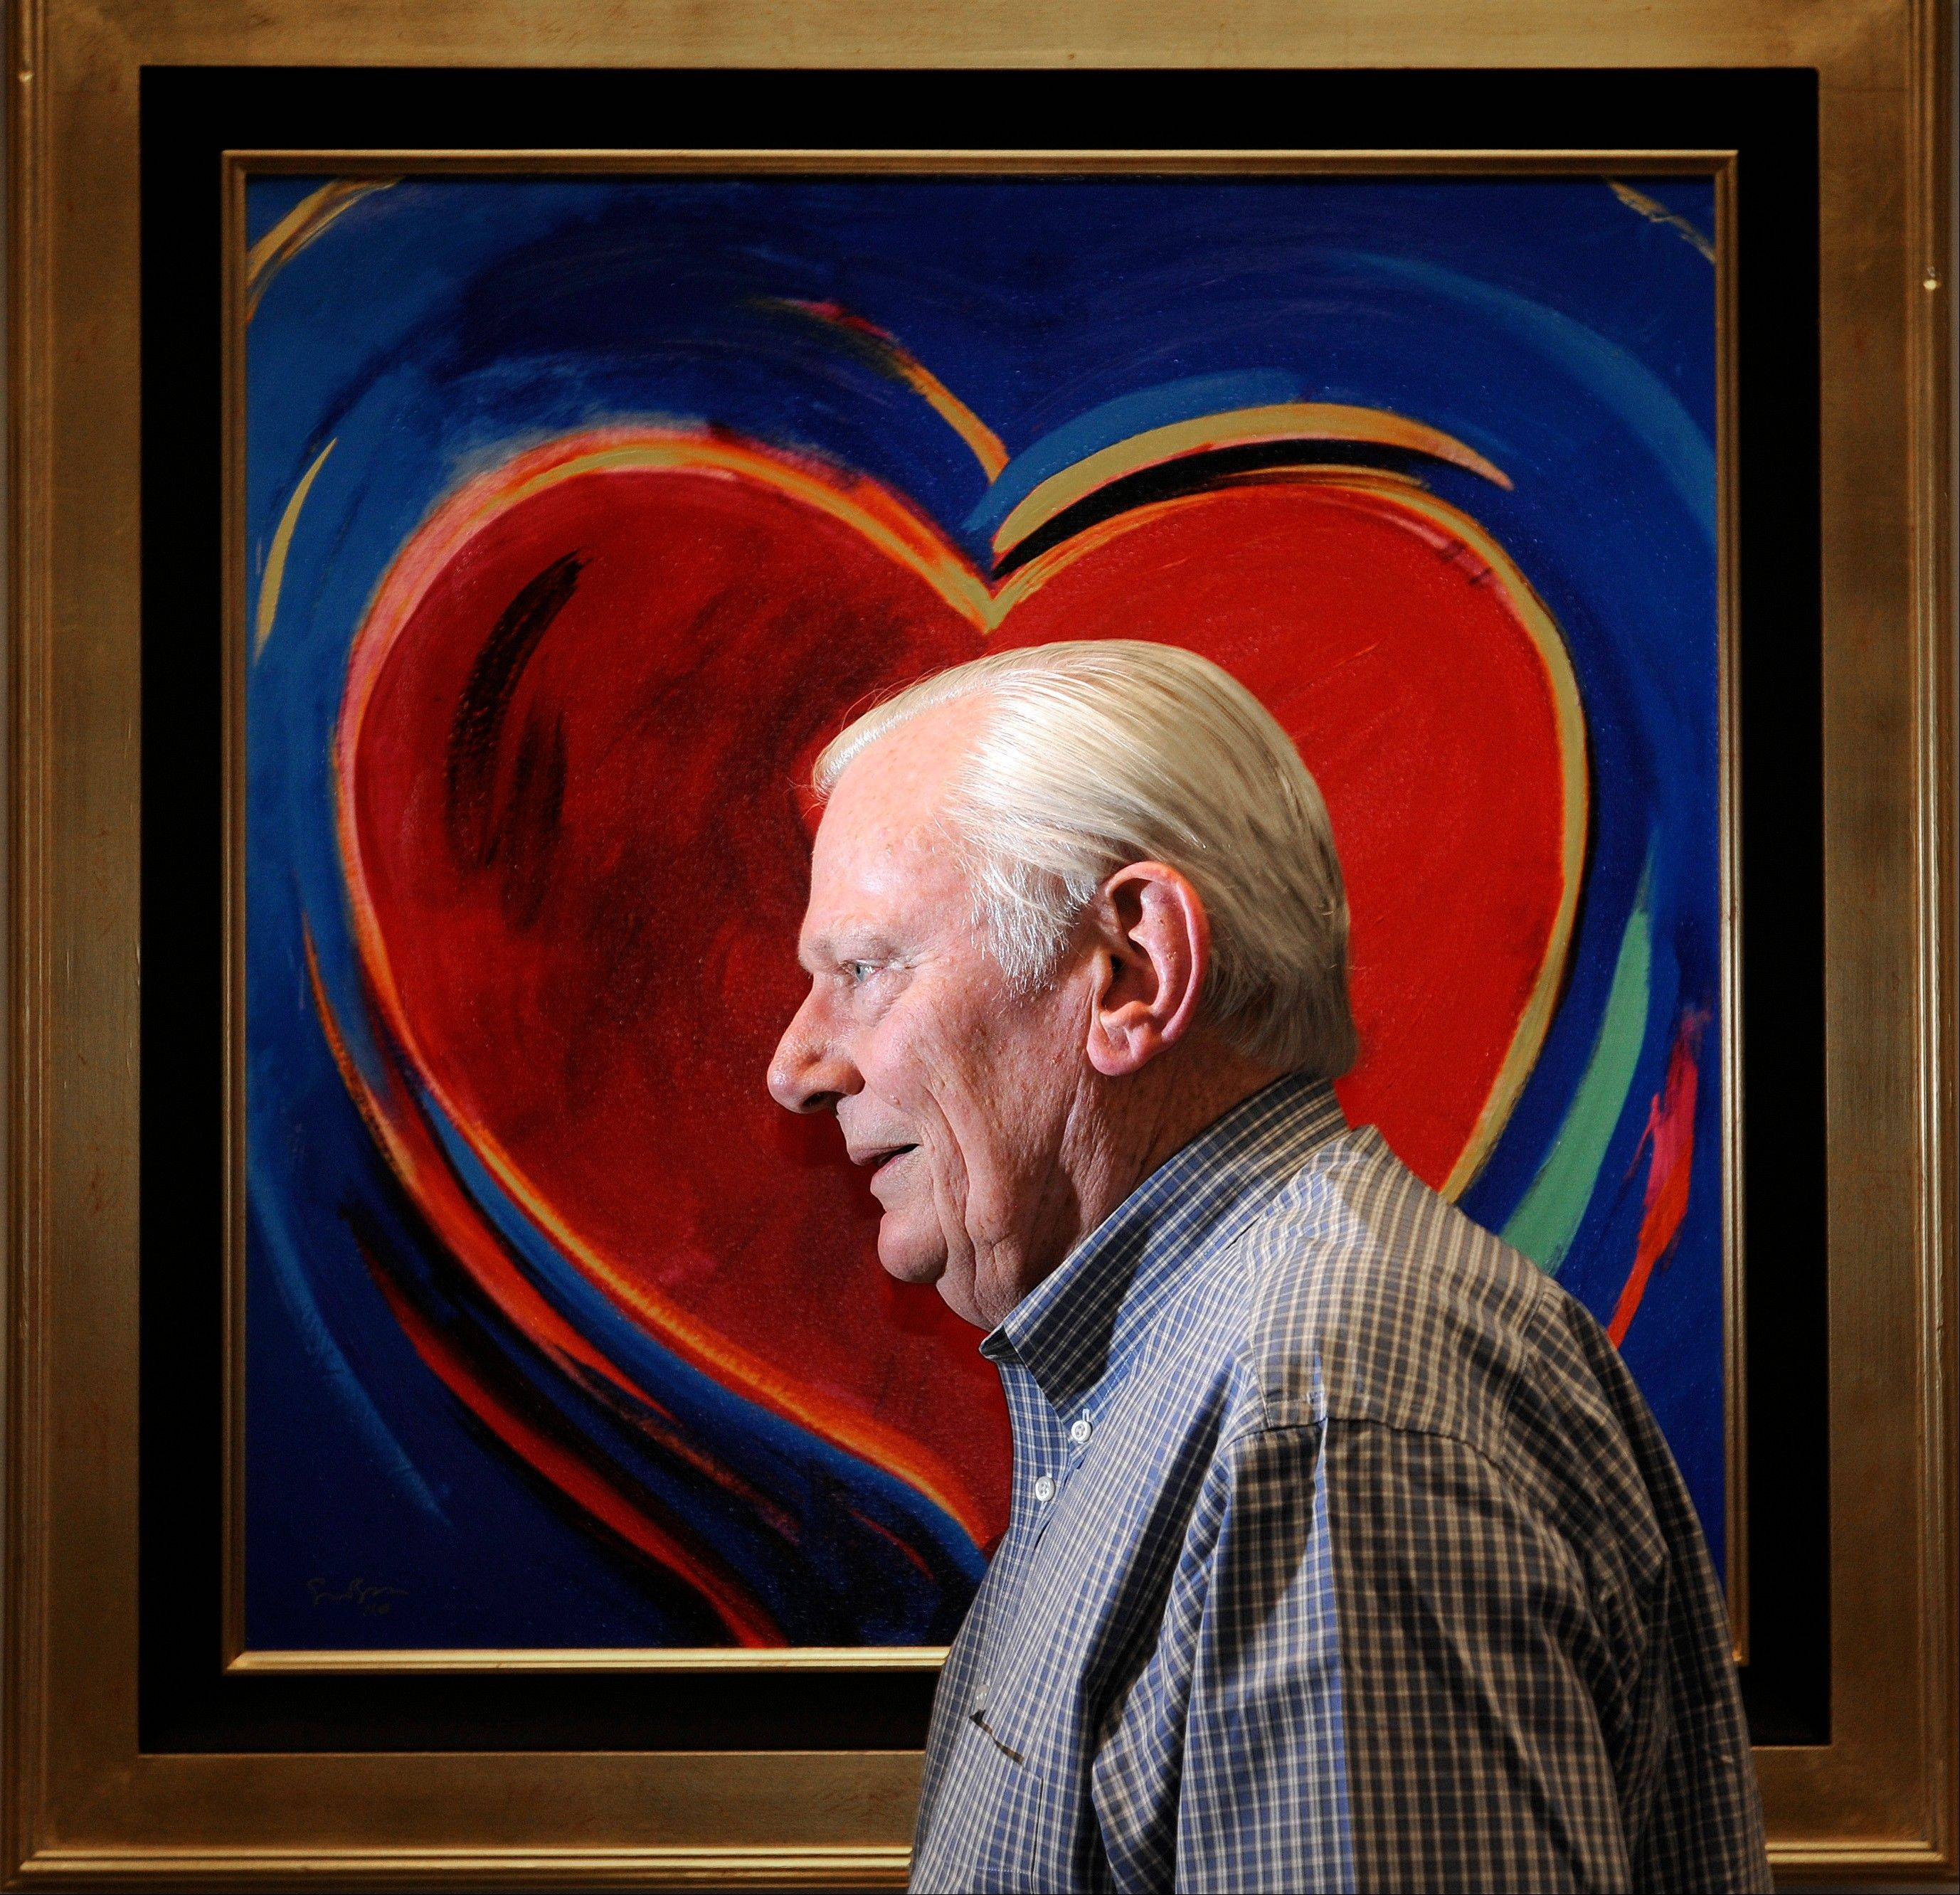 Herb Kelleher, co-founder, Chairman Emeritus and former CEO of Southwest Airlines, poses for a portrait in his office in Dallas.